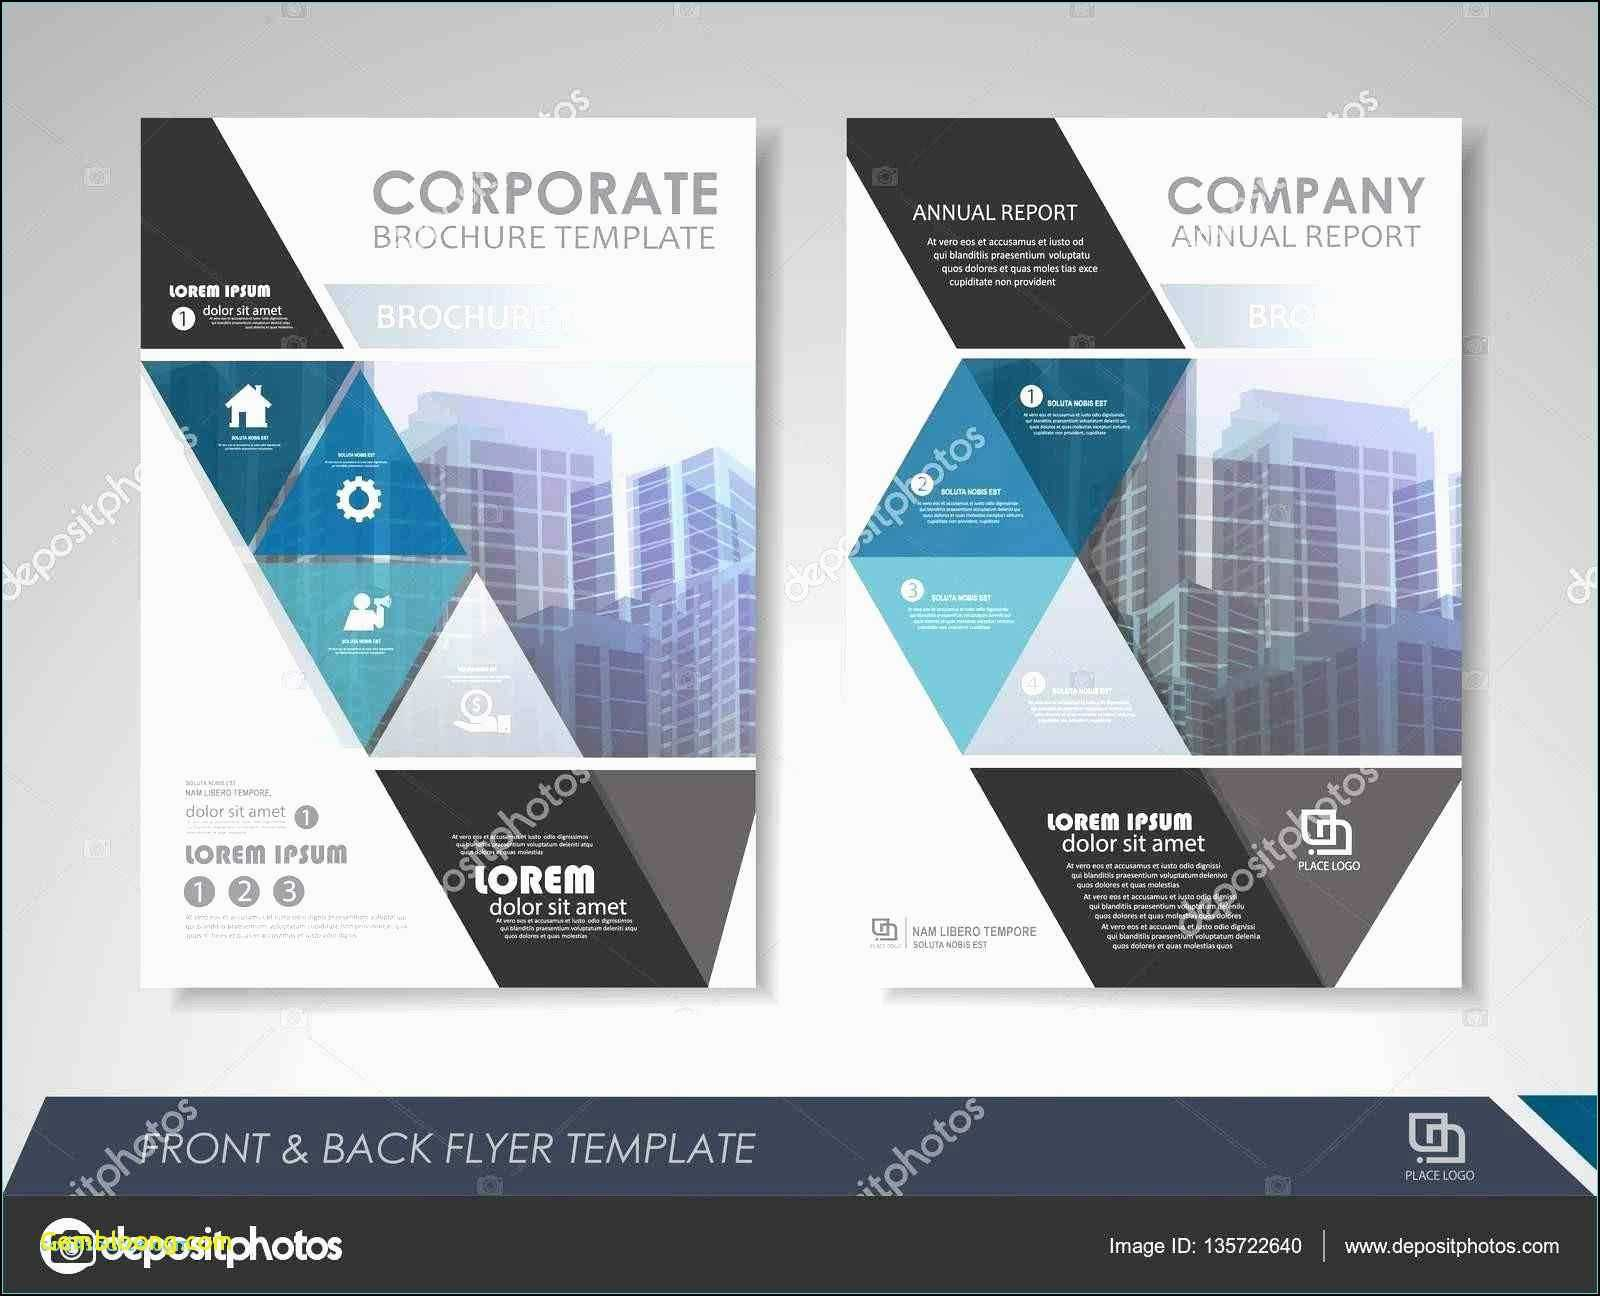 026 In Design Flyer Template Unbelievable Ideas Free For Mac Brochure Templates